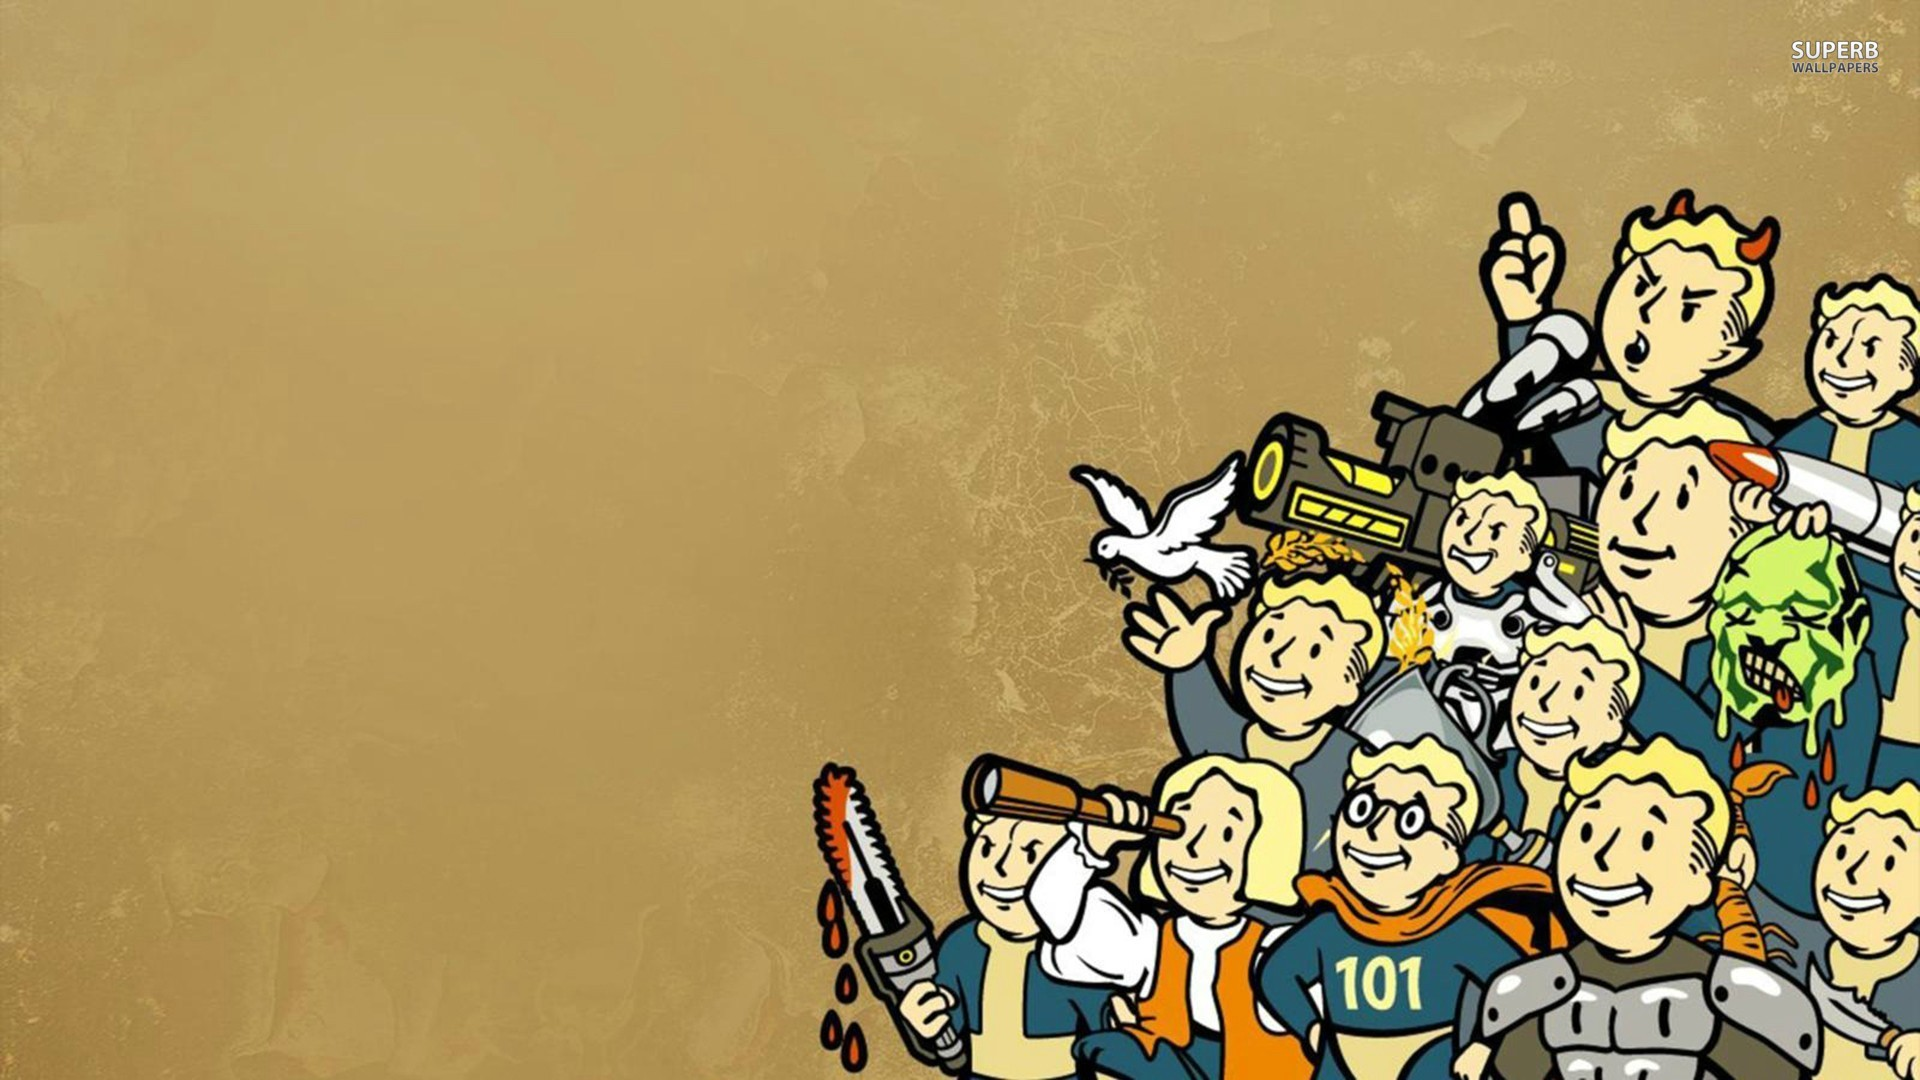 Vault Boy - Fallout wallpaper 1920x1080